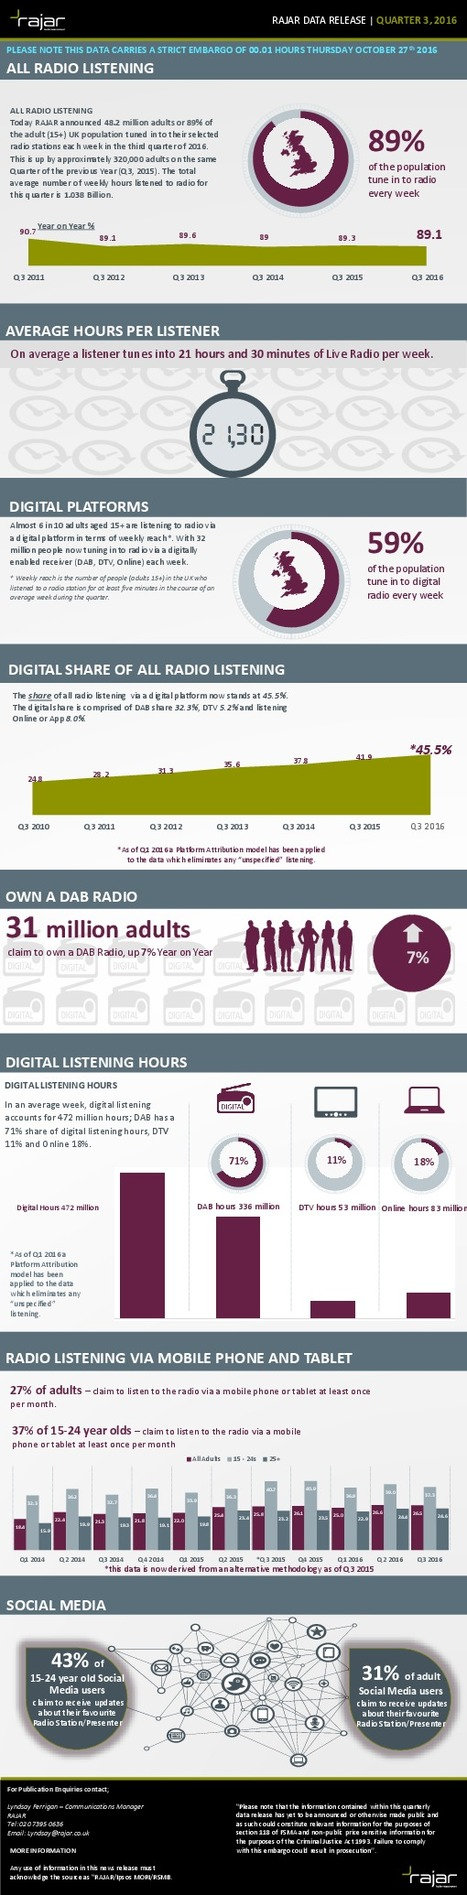 RAJAR Q3 2016: Quarterly infographic data sheet | Radio 2.0 (Esp) | Scoop.it